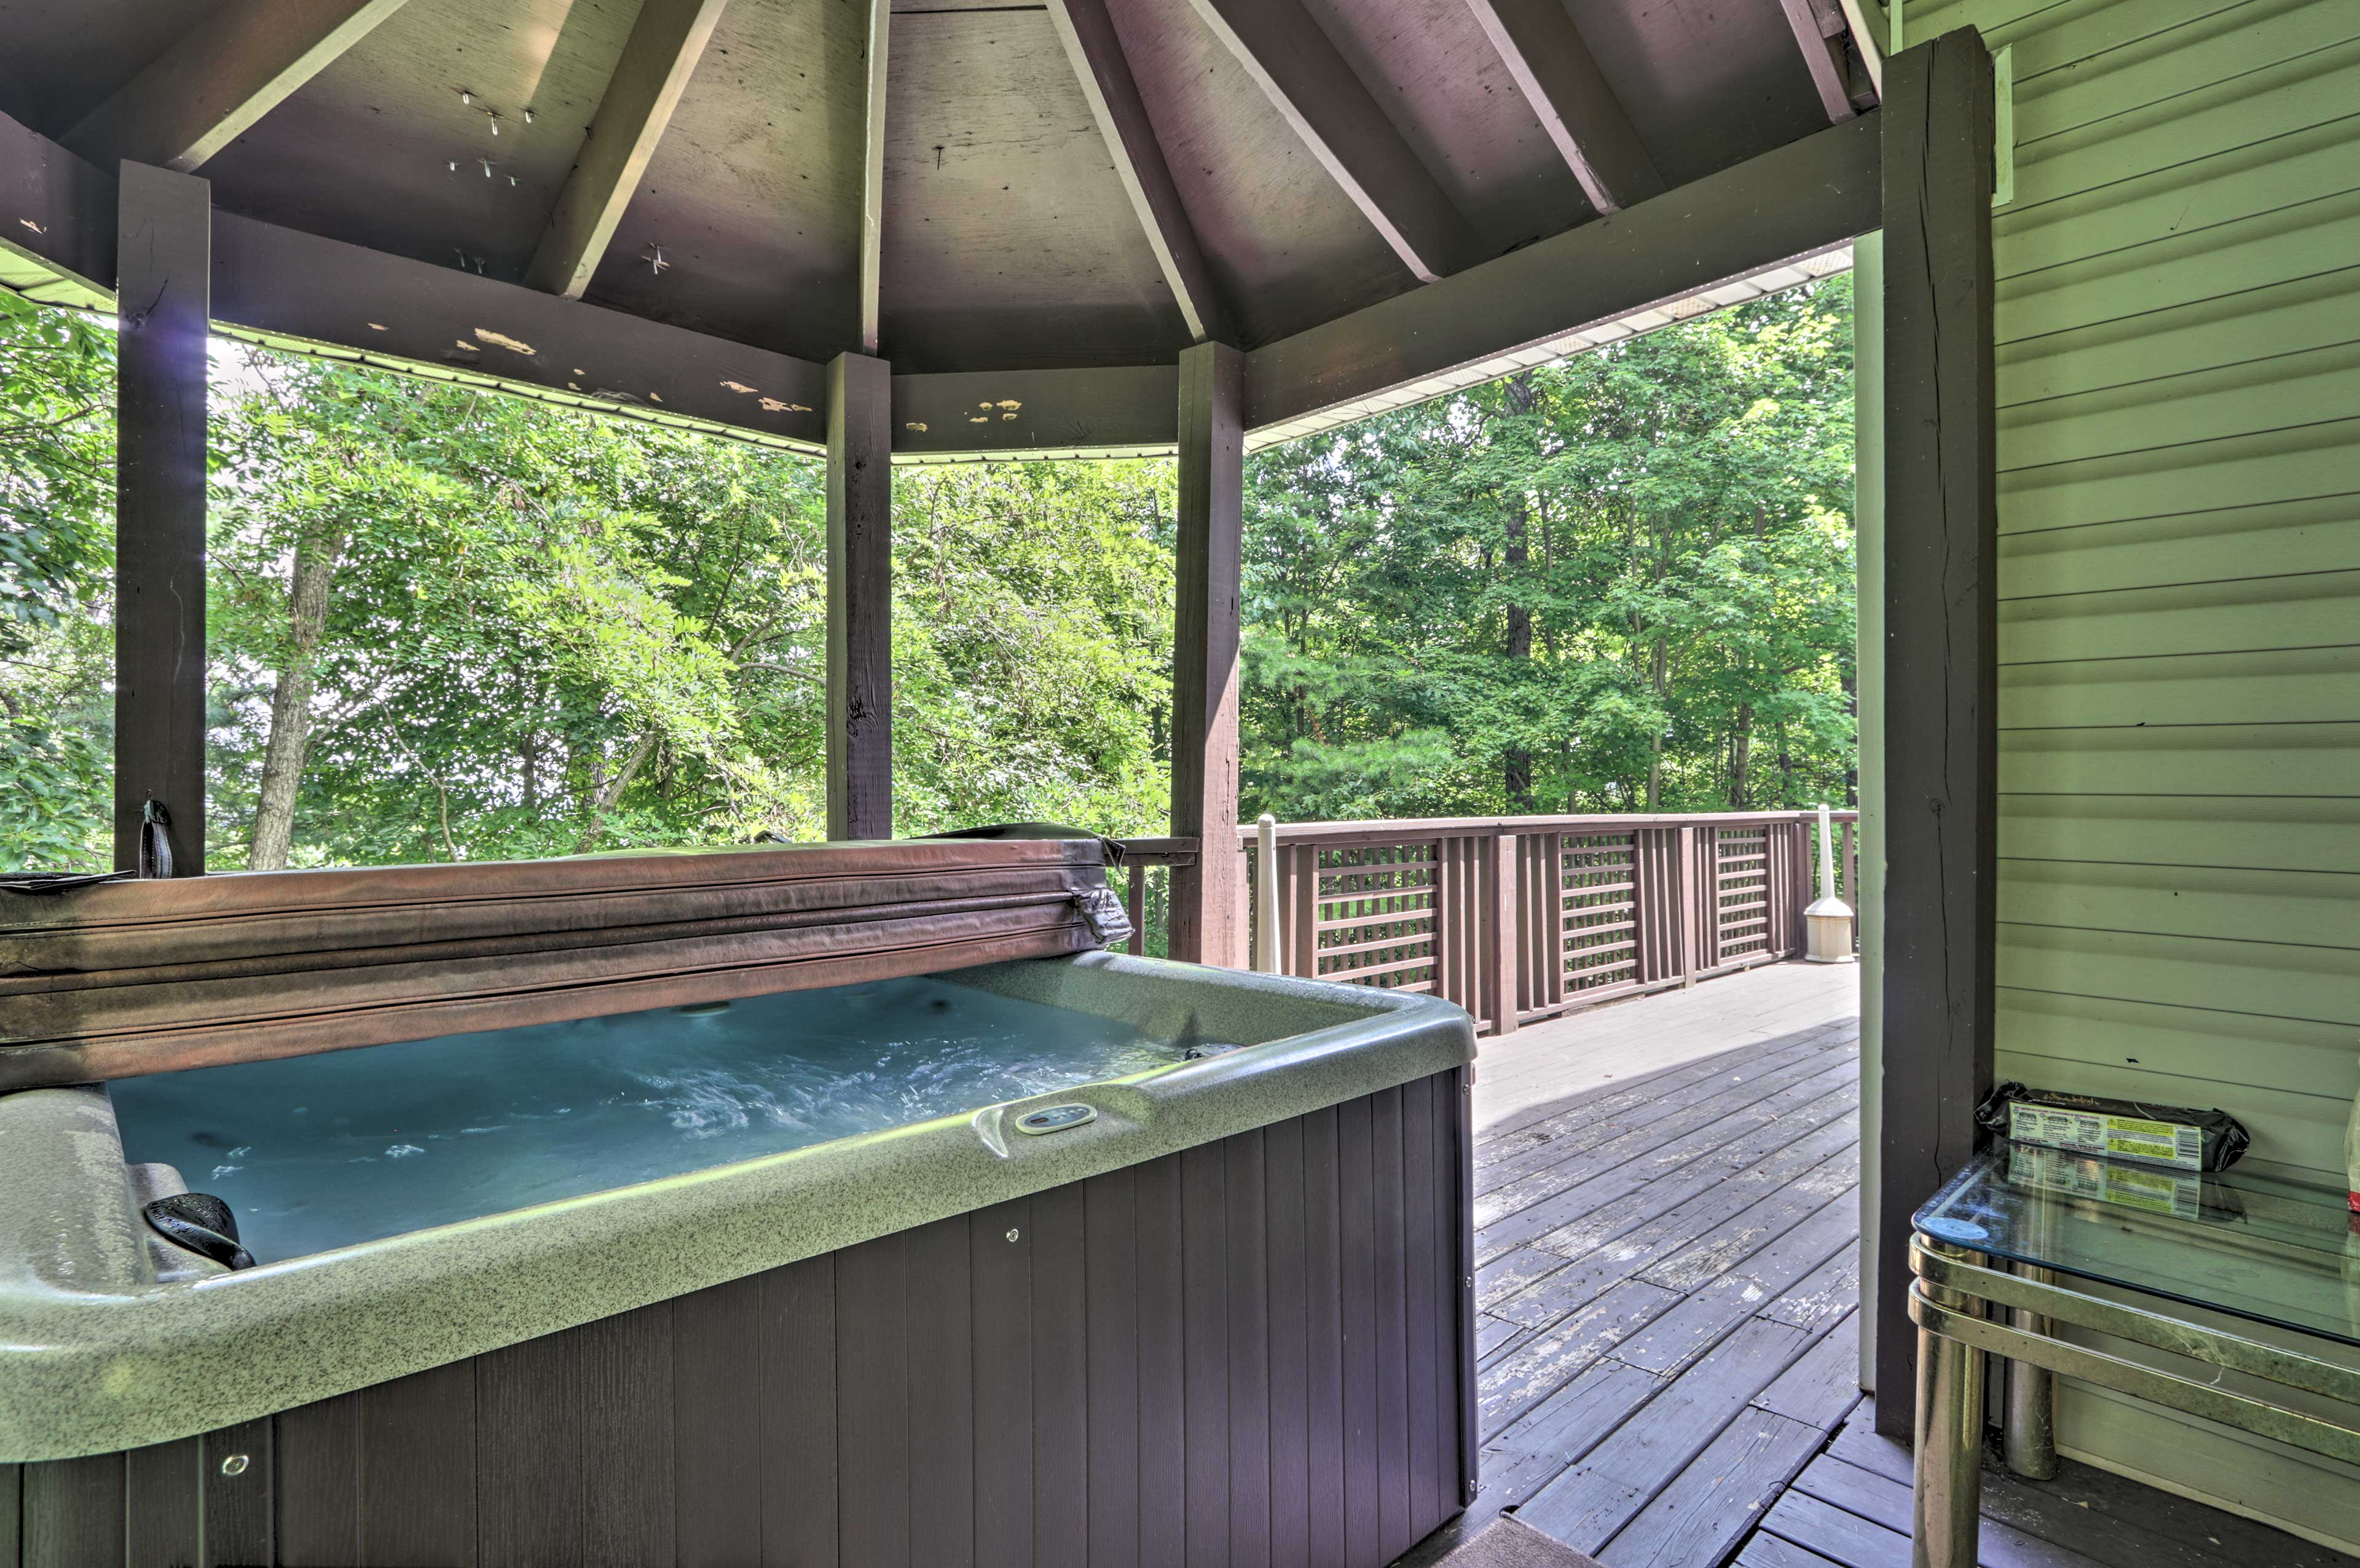 The private hot tub provides immense relaxation.